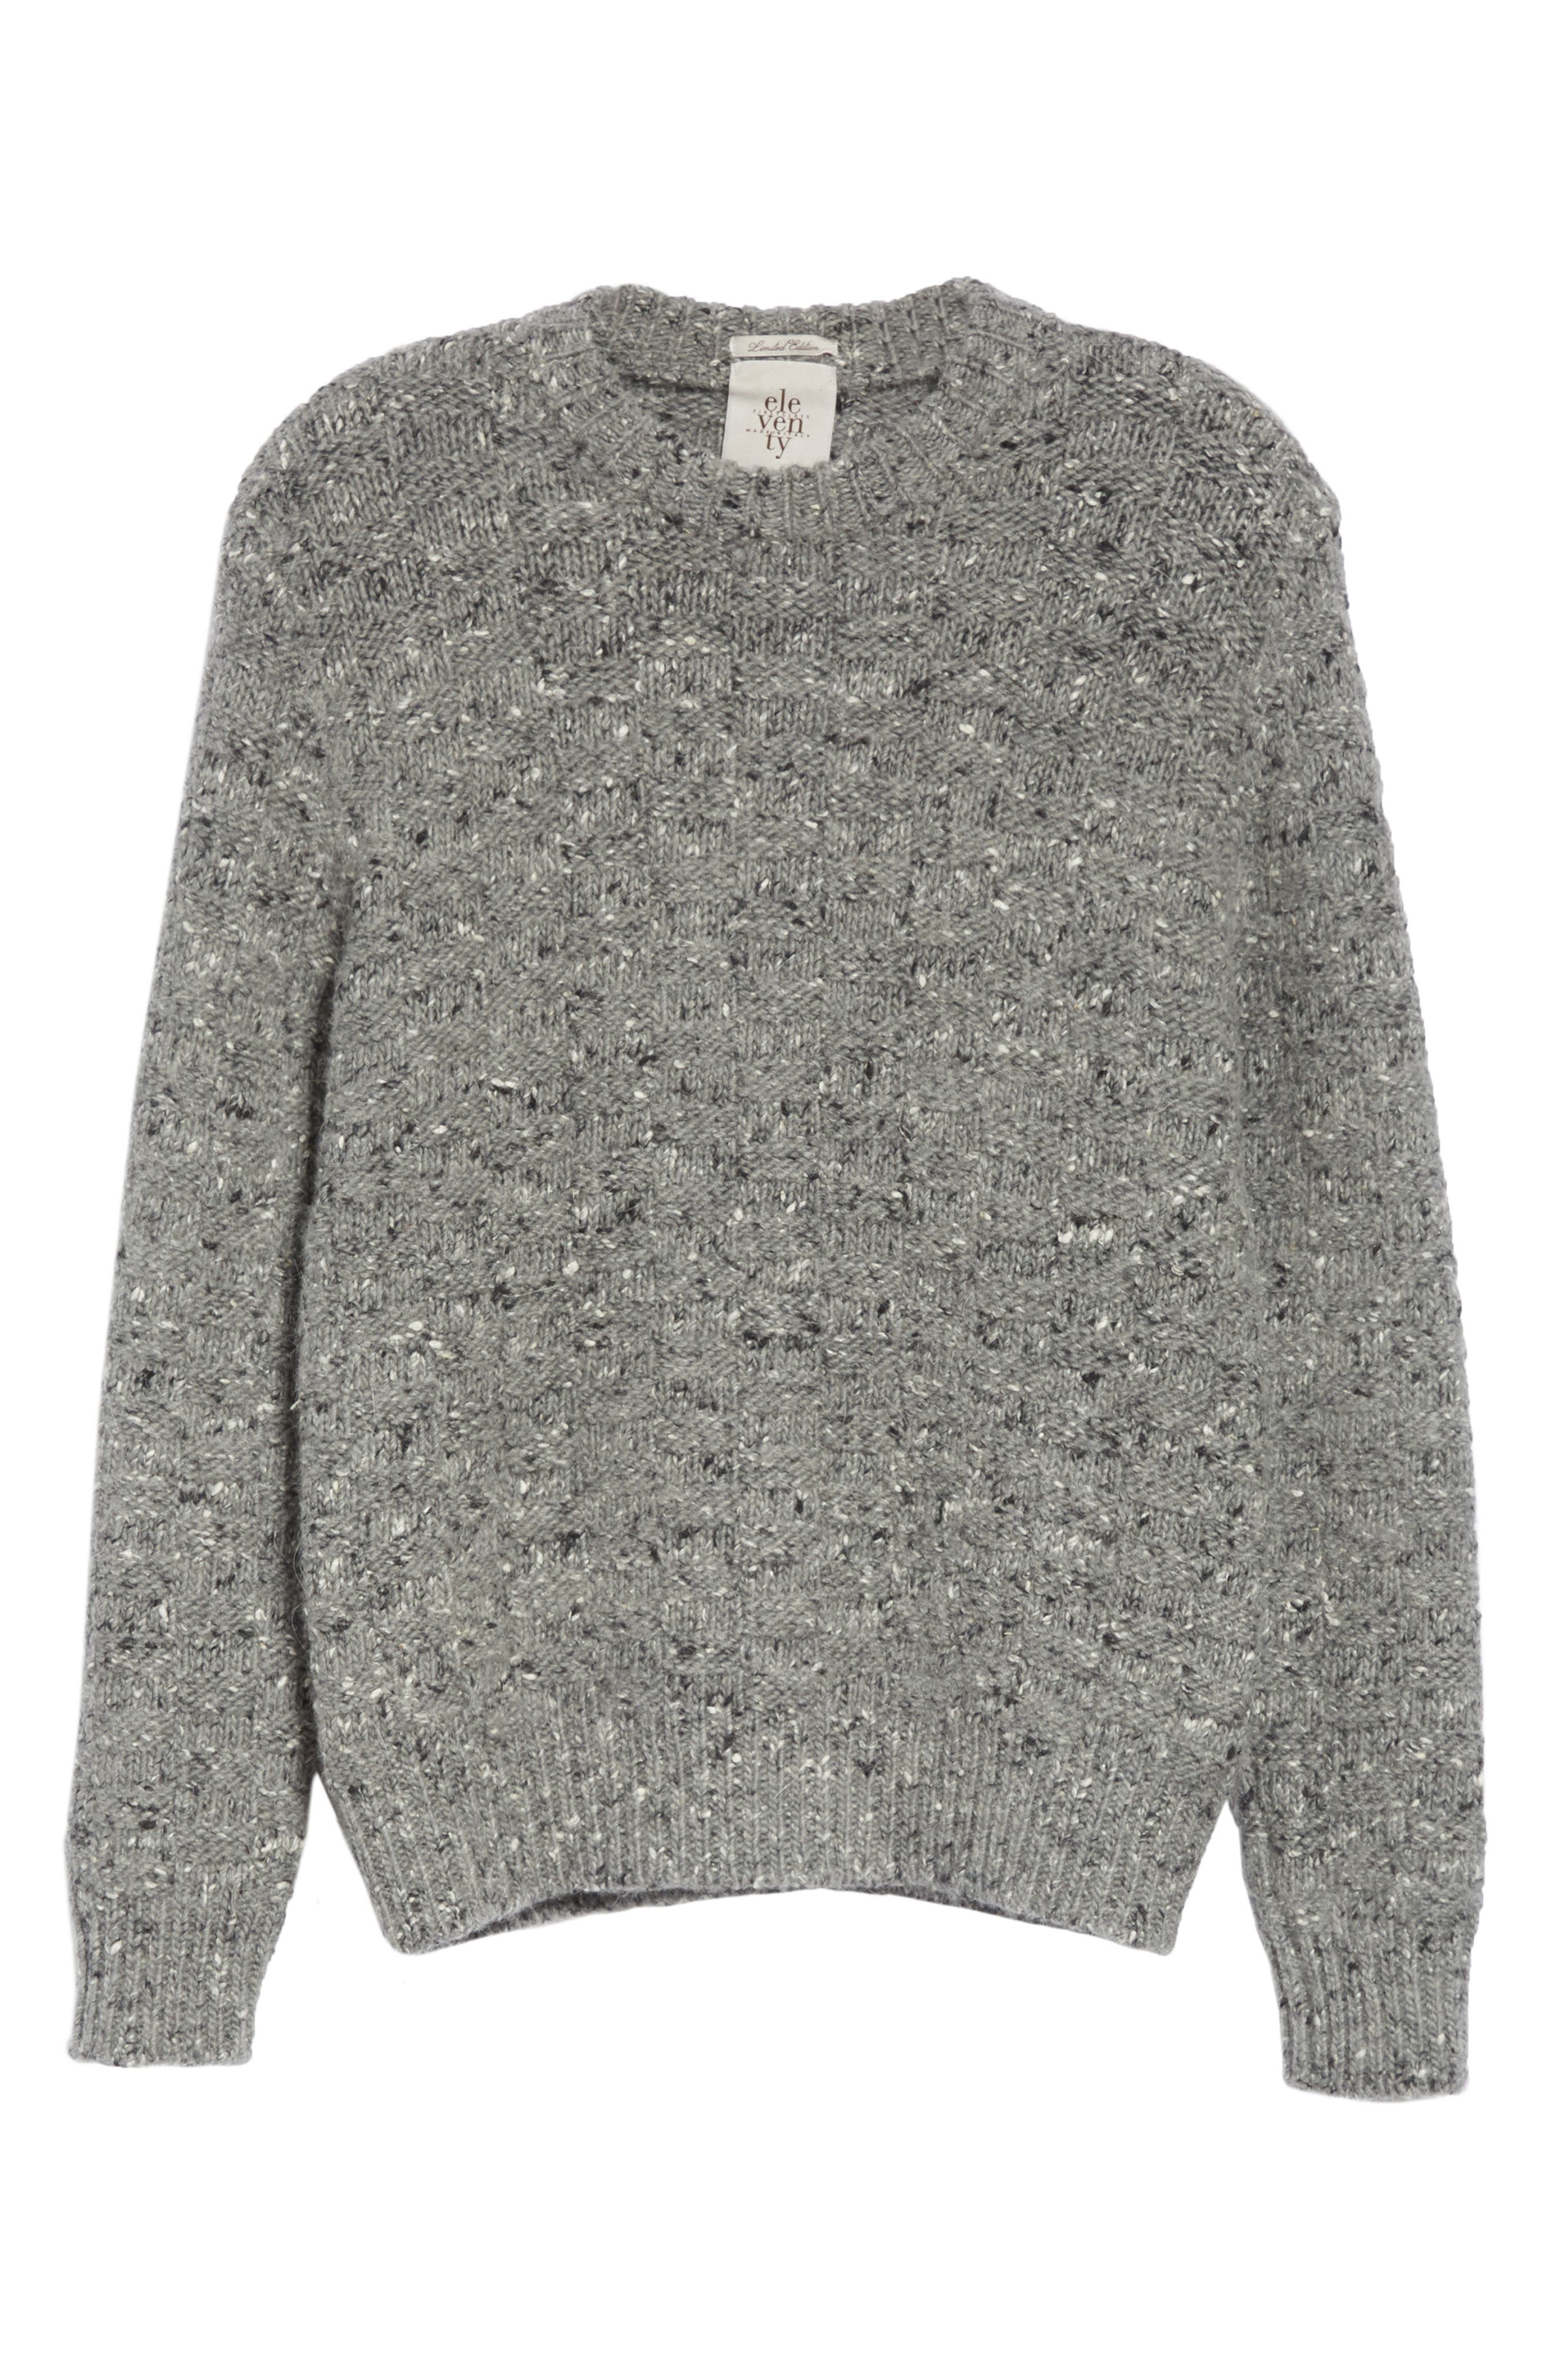 Wool Blend Crewneck Sweater,                             Alternate thumbnail 6, color,                             GREY